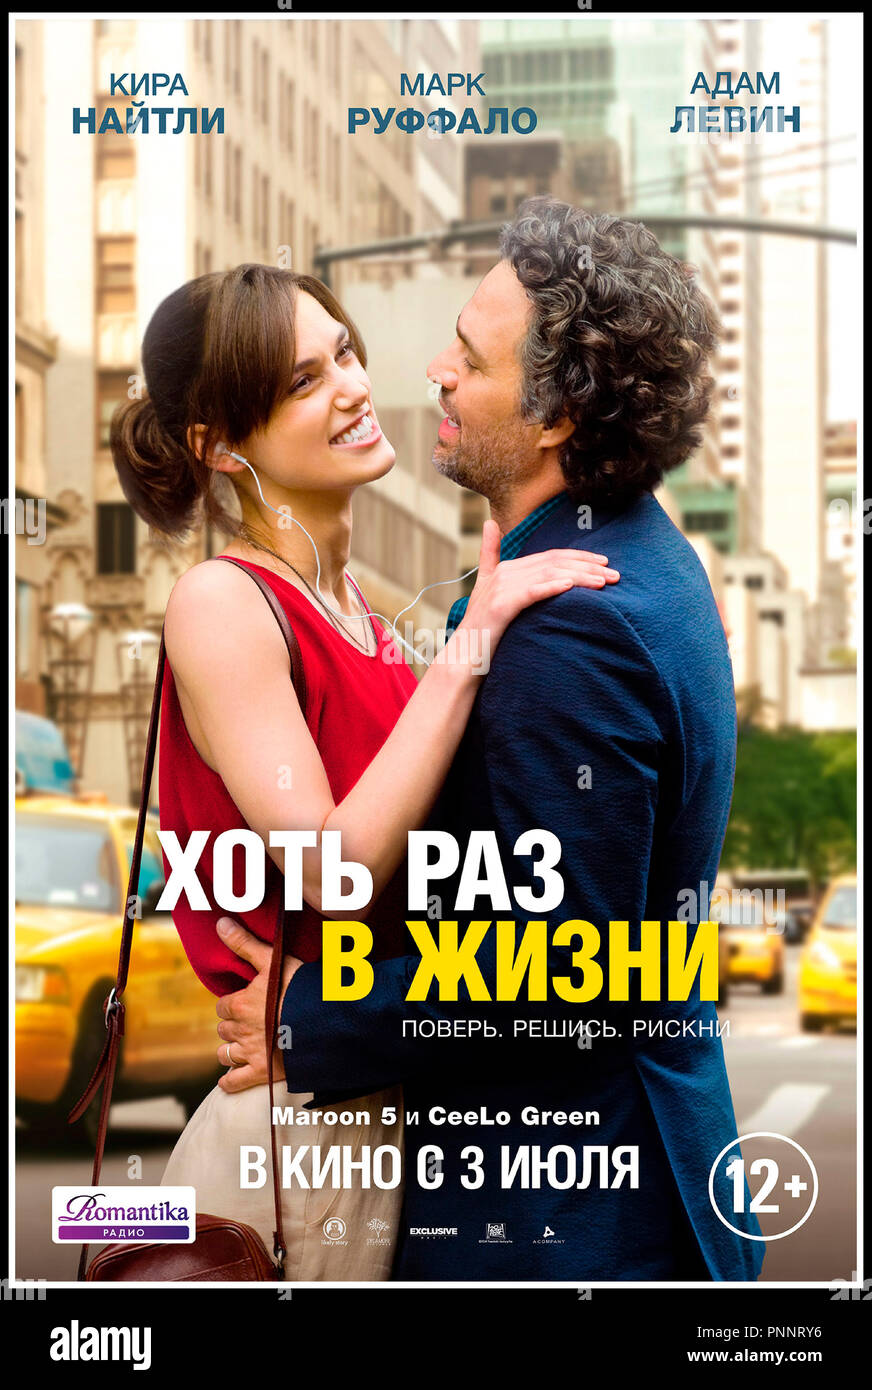 Prod DB © Apatow Productions - Exclusive Media Group - Sycamore Pictures - Likely Story / DR NEW YORK MELODY (BEGIN AGAIN) de John Carney 2014 USA teaser russe avec Mark Ruffalo et Keira Knightley musicienne, guitariste, guitare autre titre: Can a Song Save Your Life? - Stock Image